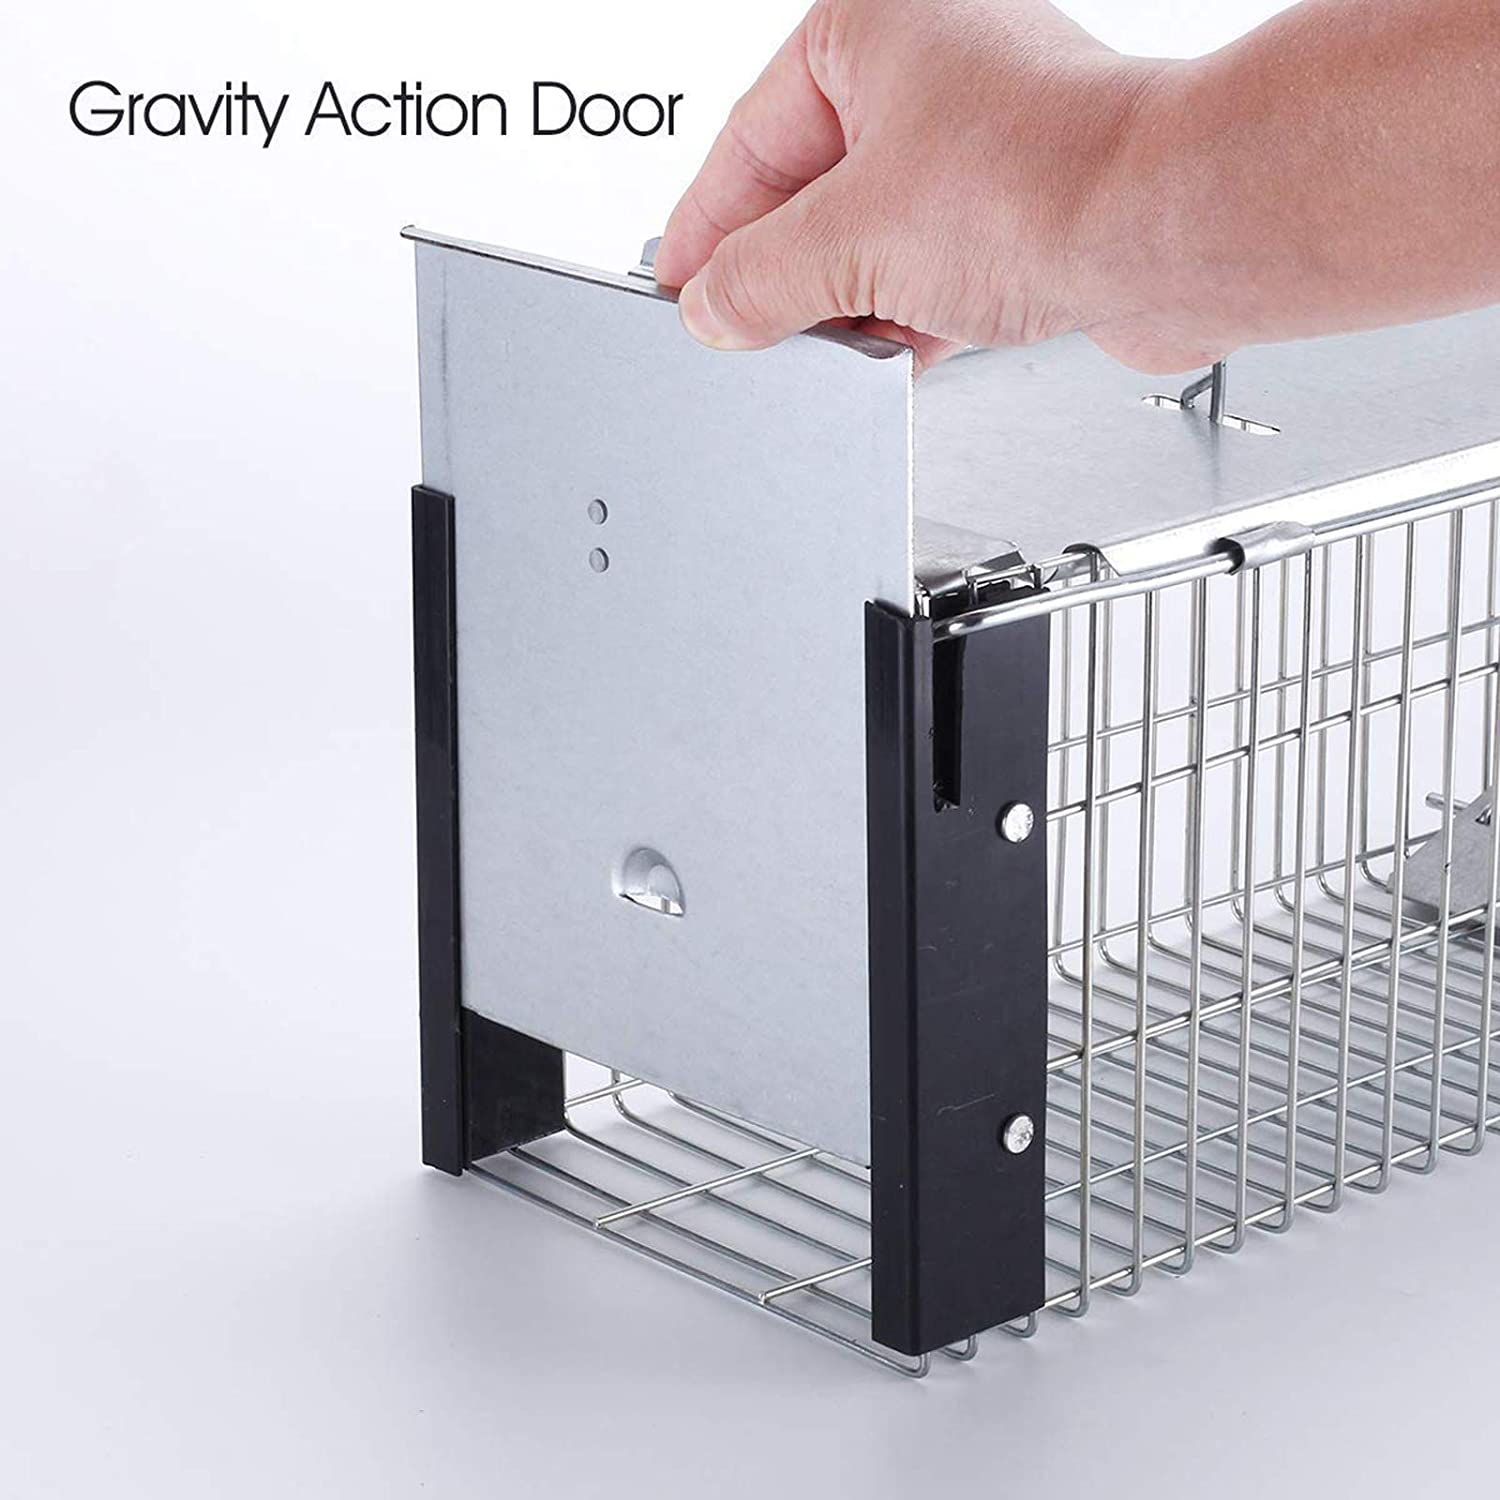 Faicuk Heavy Duty Squirrel Trap Chipmunk Trap Rat Trap and Other Similar-Size...